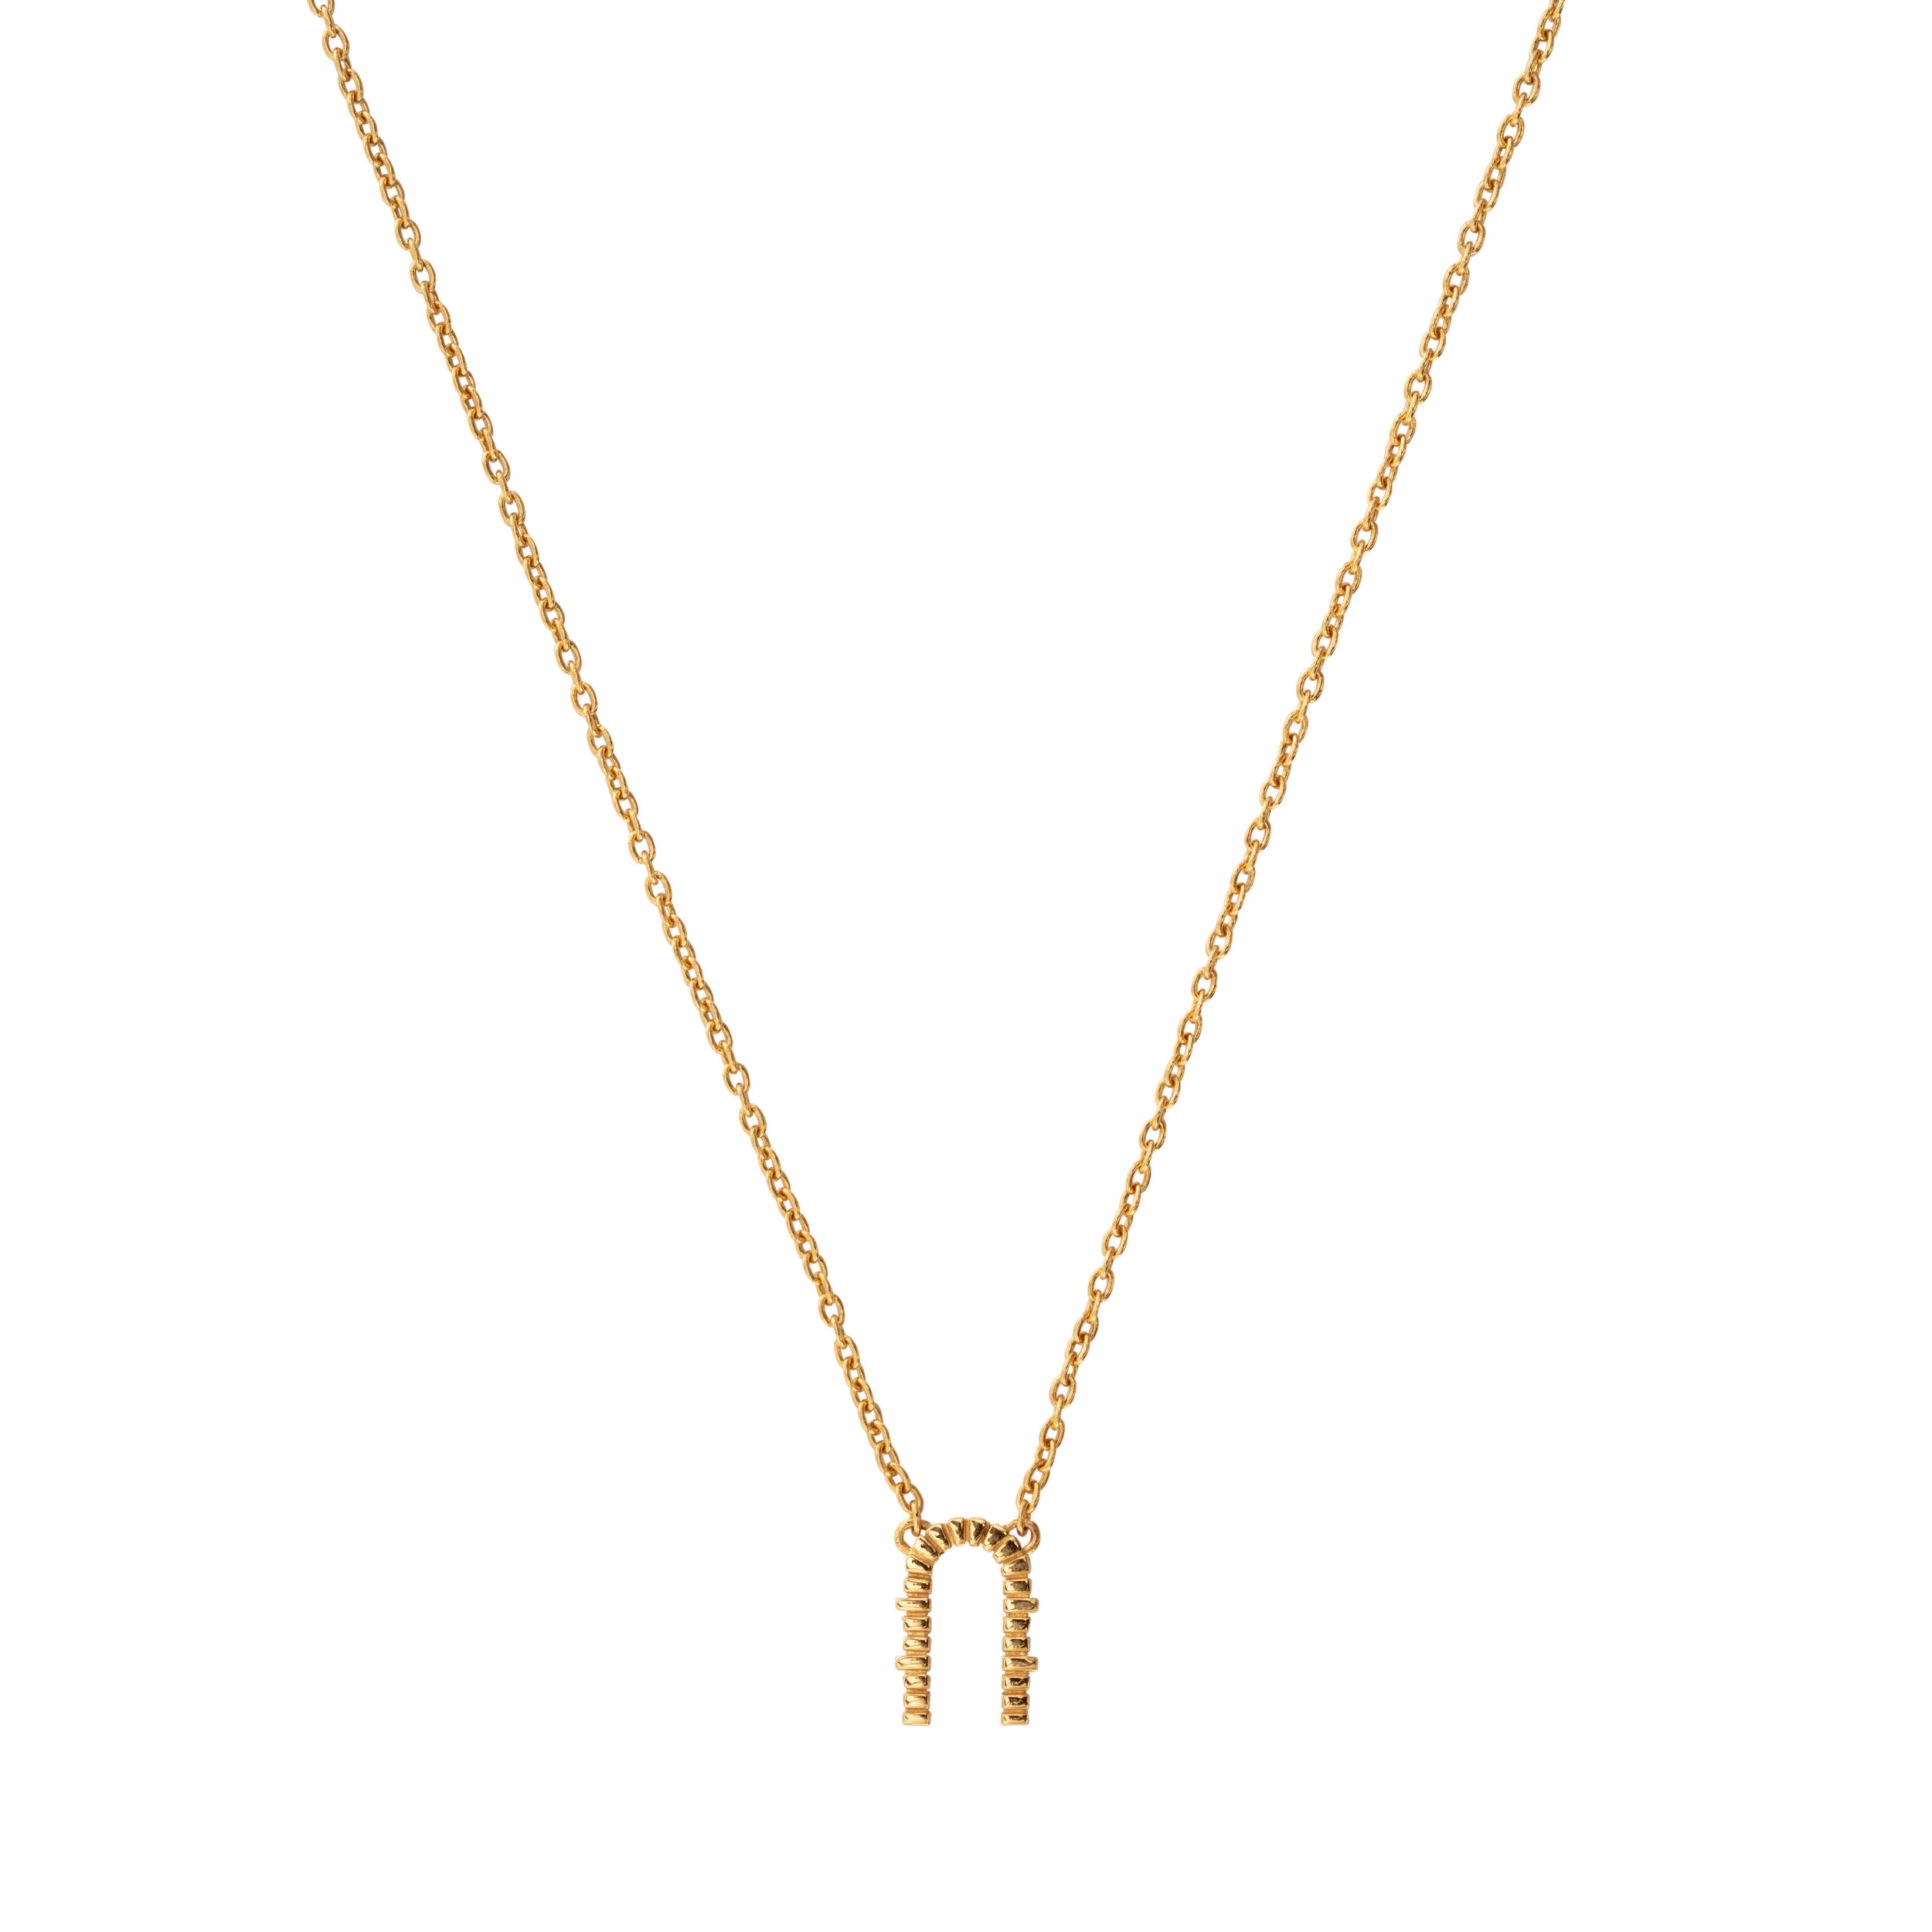 LOVEGATE NECKLACE 18K GOLD